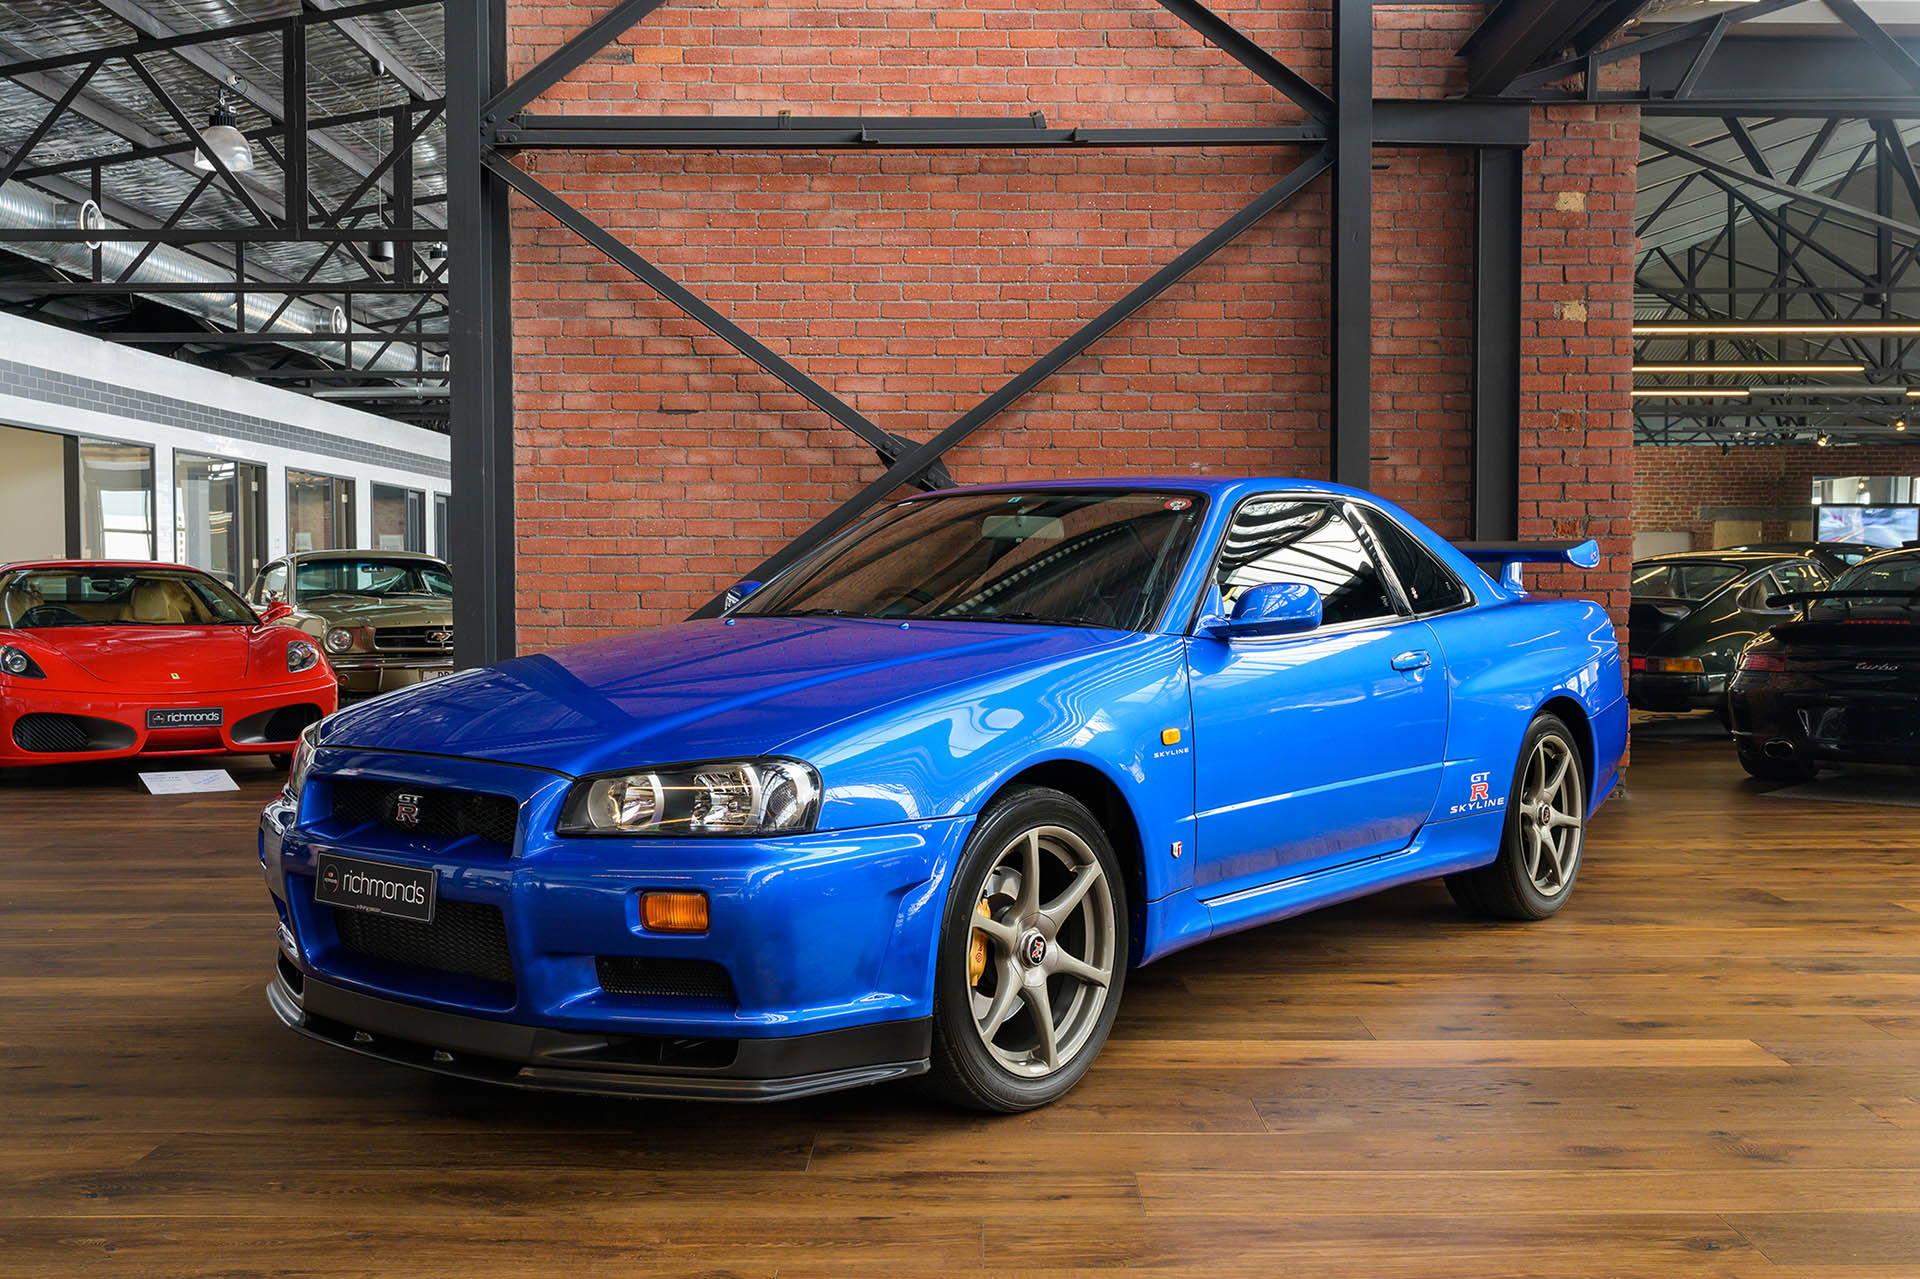 1999 Nissan Skyline Gtr R34 For Sale >> 1999 Nissan Skyline R34 GT-R V Spec - Richmonds - Classic ...